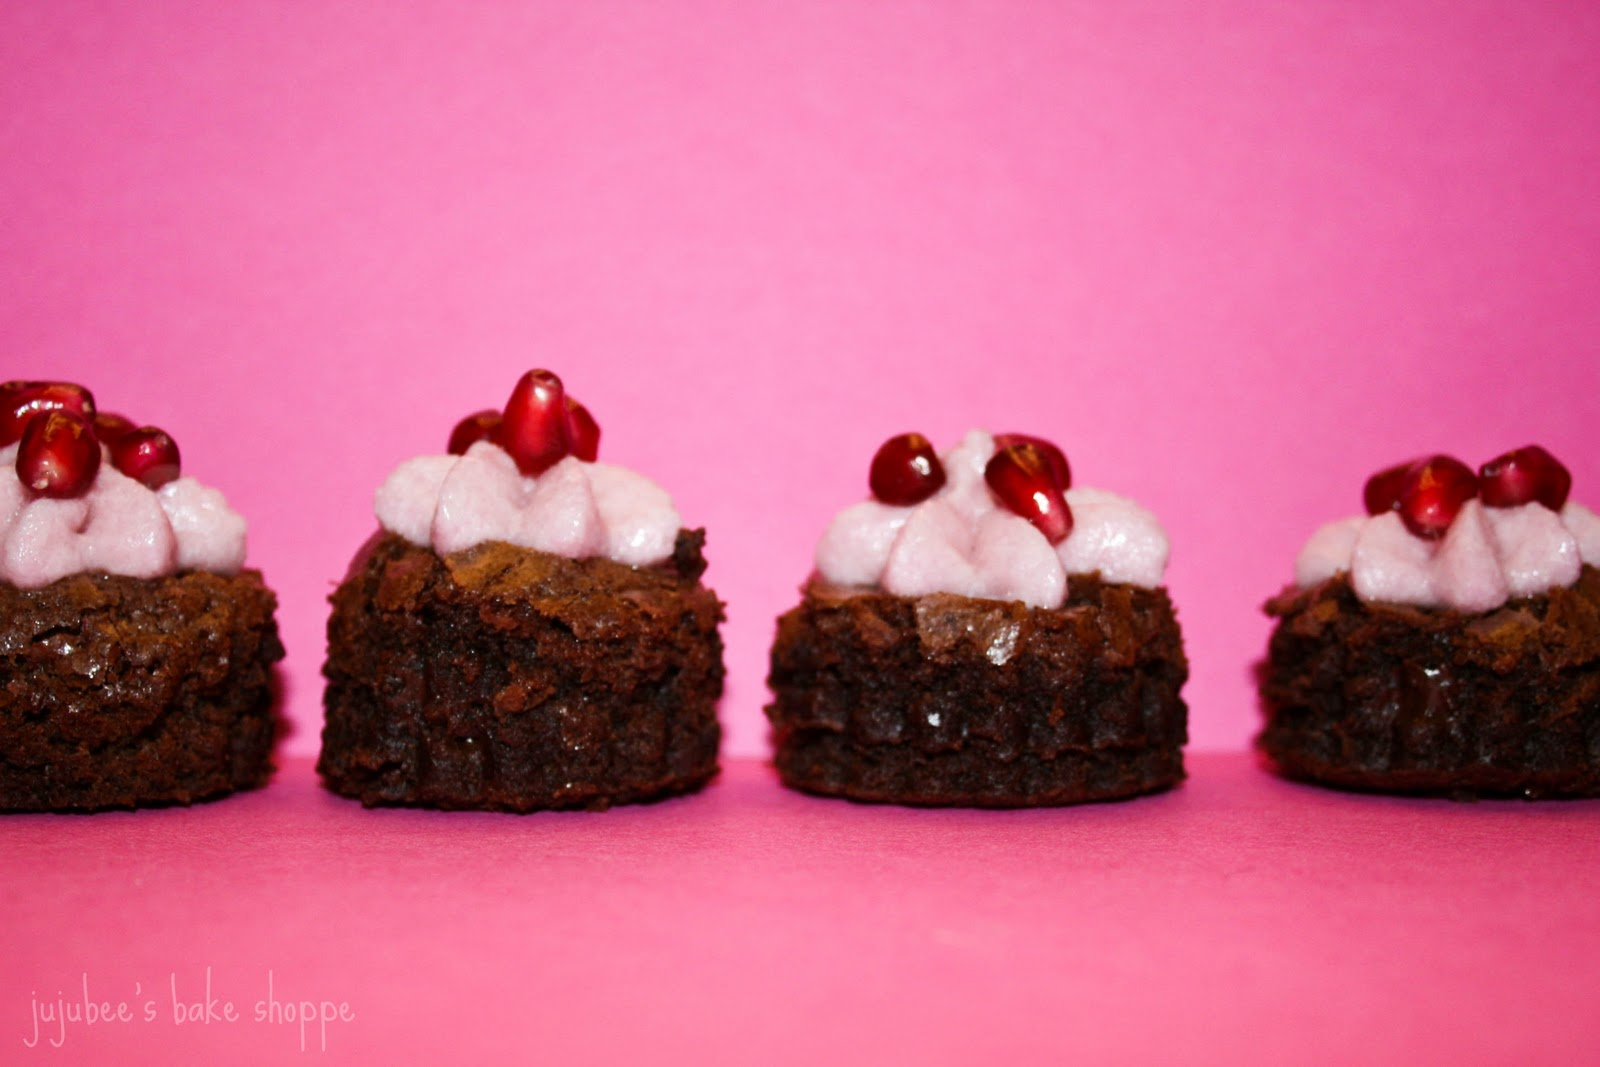 Jujubee's Bakery: Pomegranate Buttercream Brownies